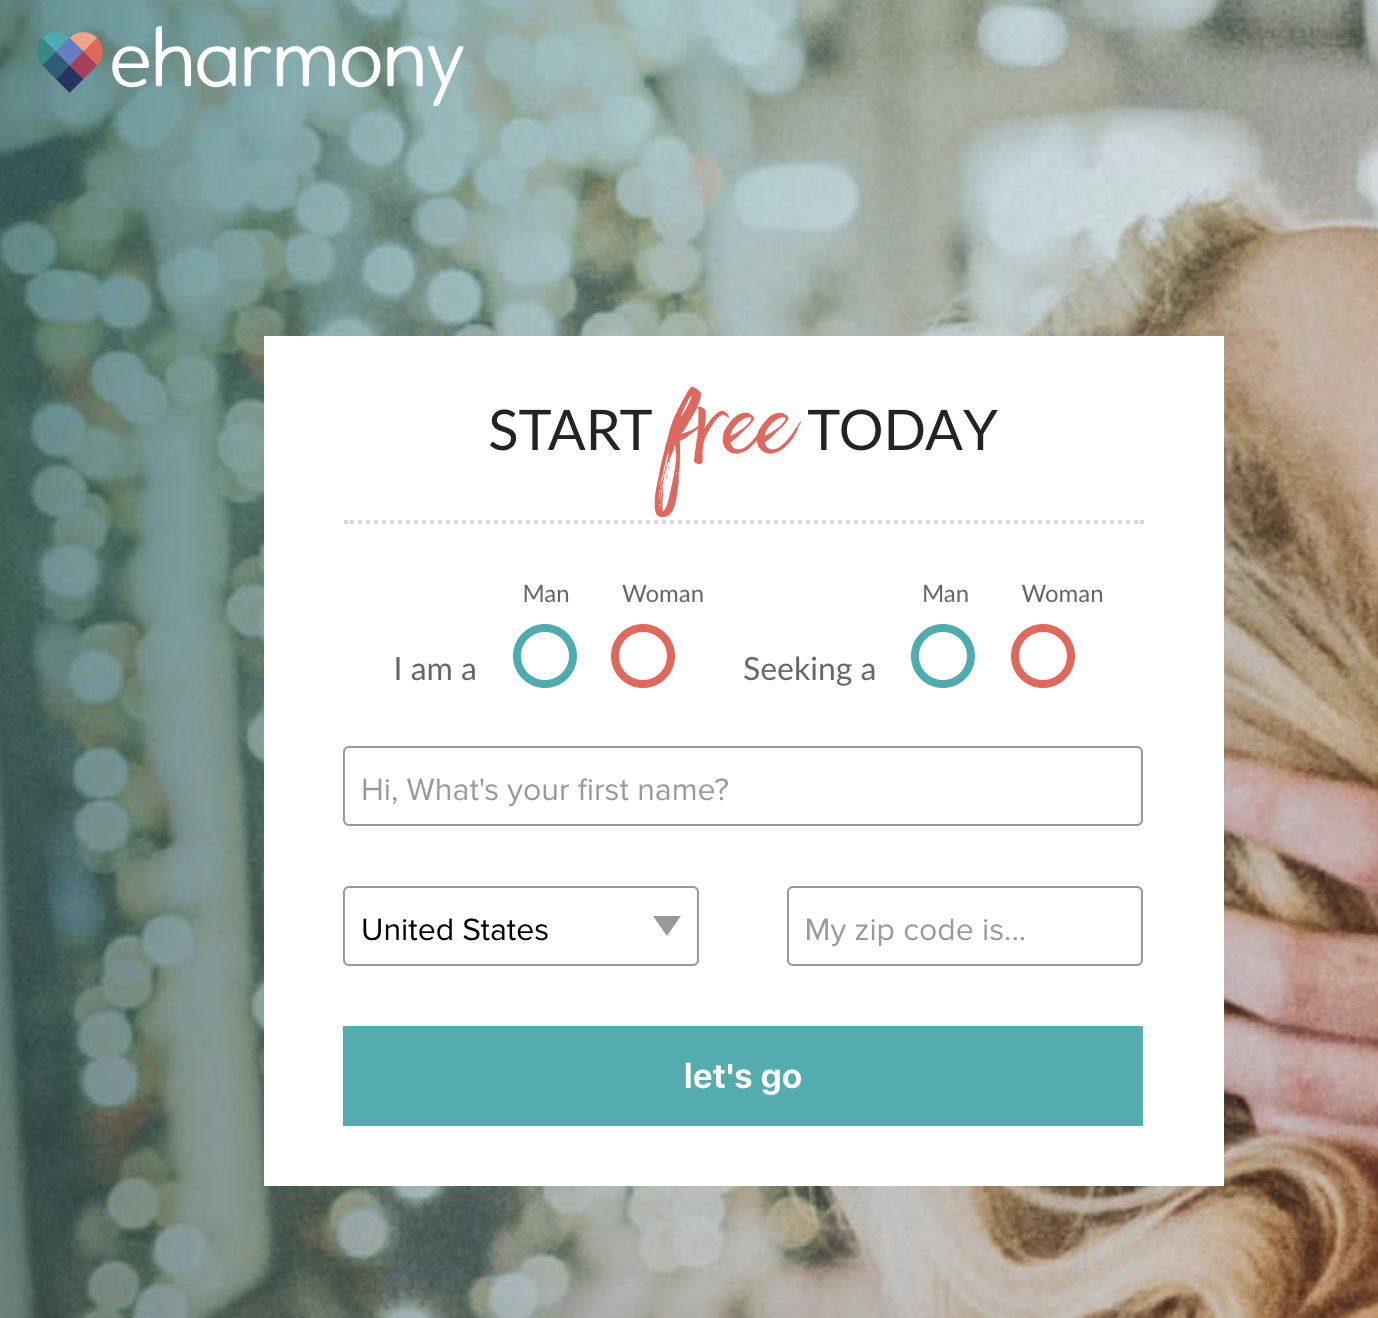 eharmony-lead-generation-form